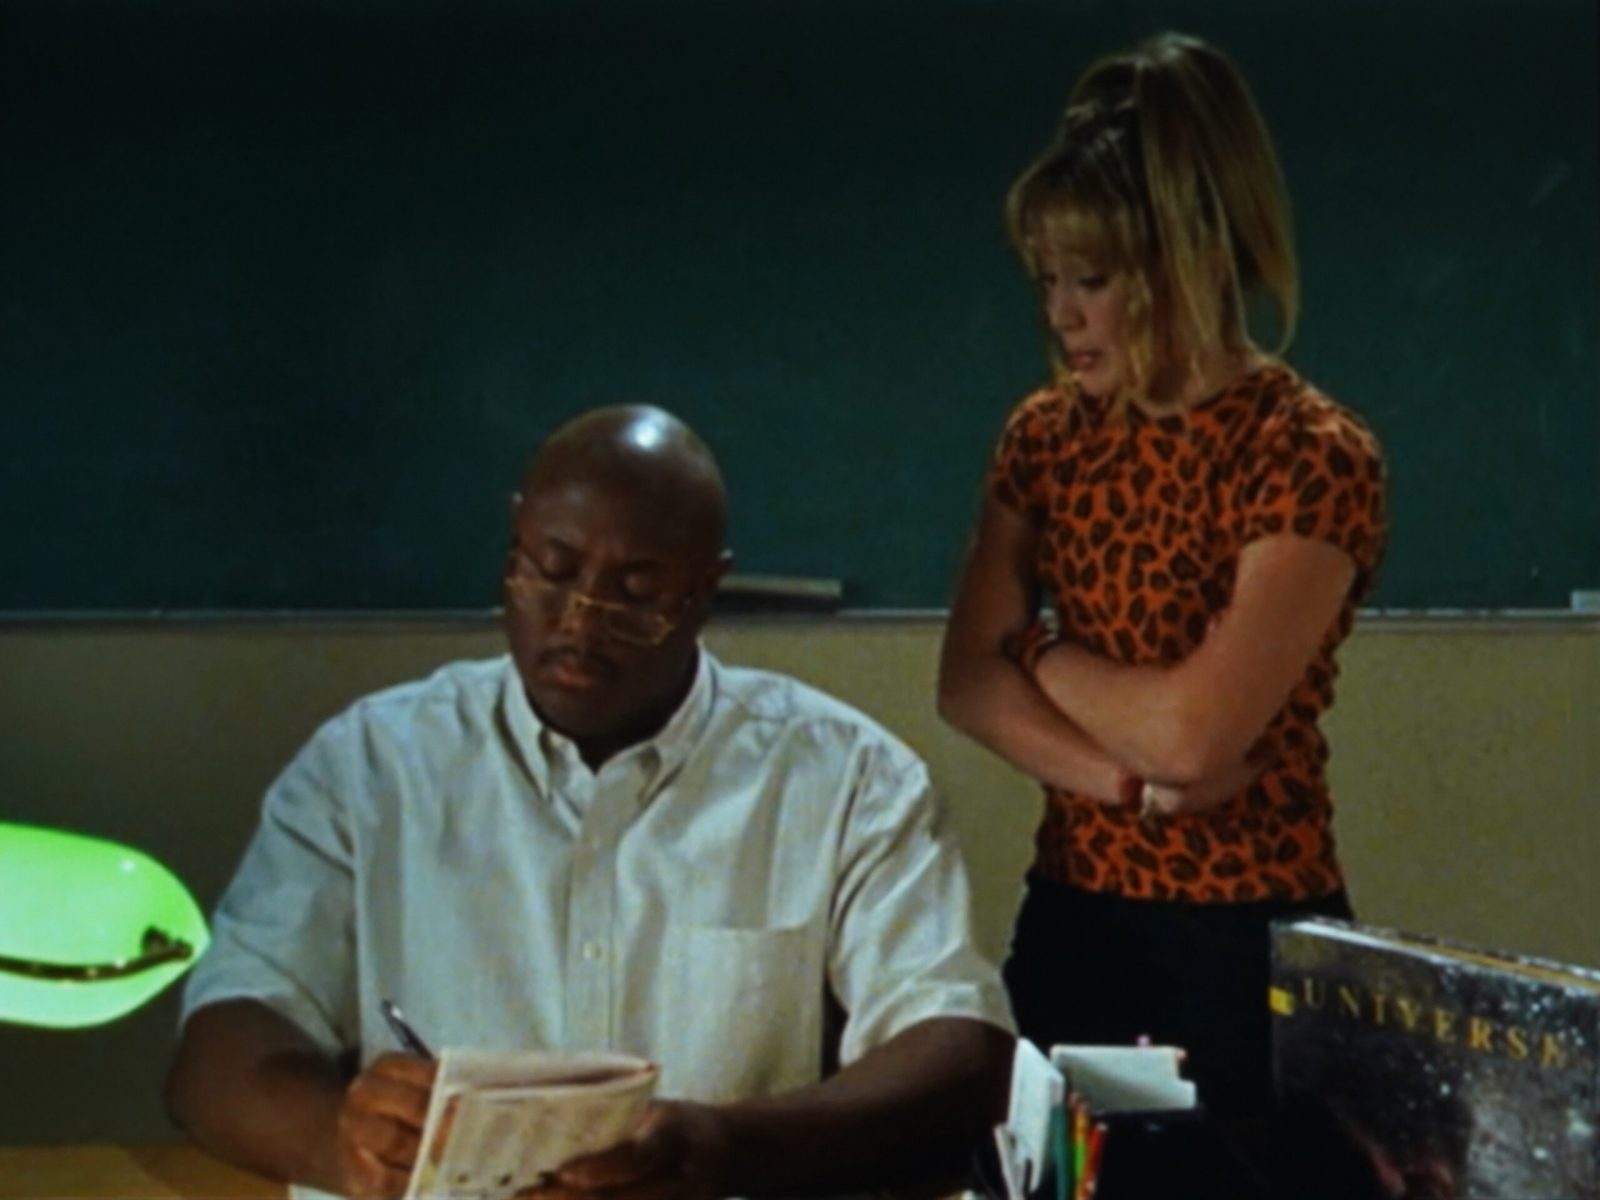 Lizzie in an Orange Spotted Shirt